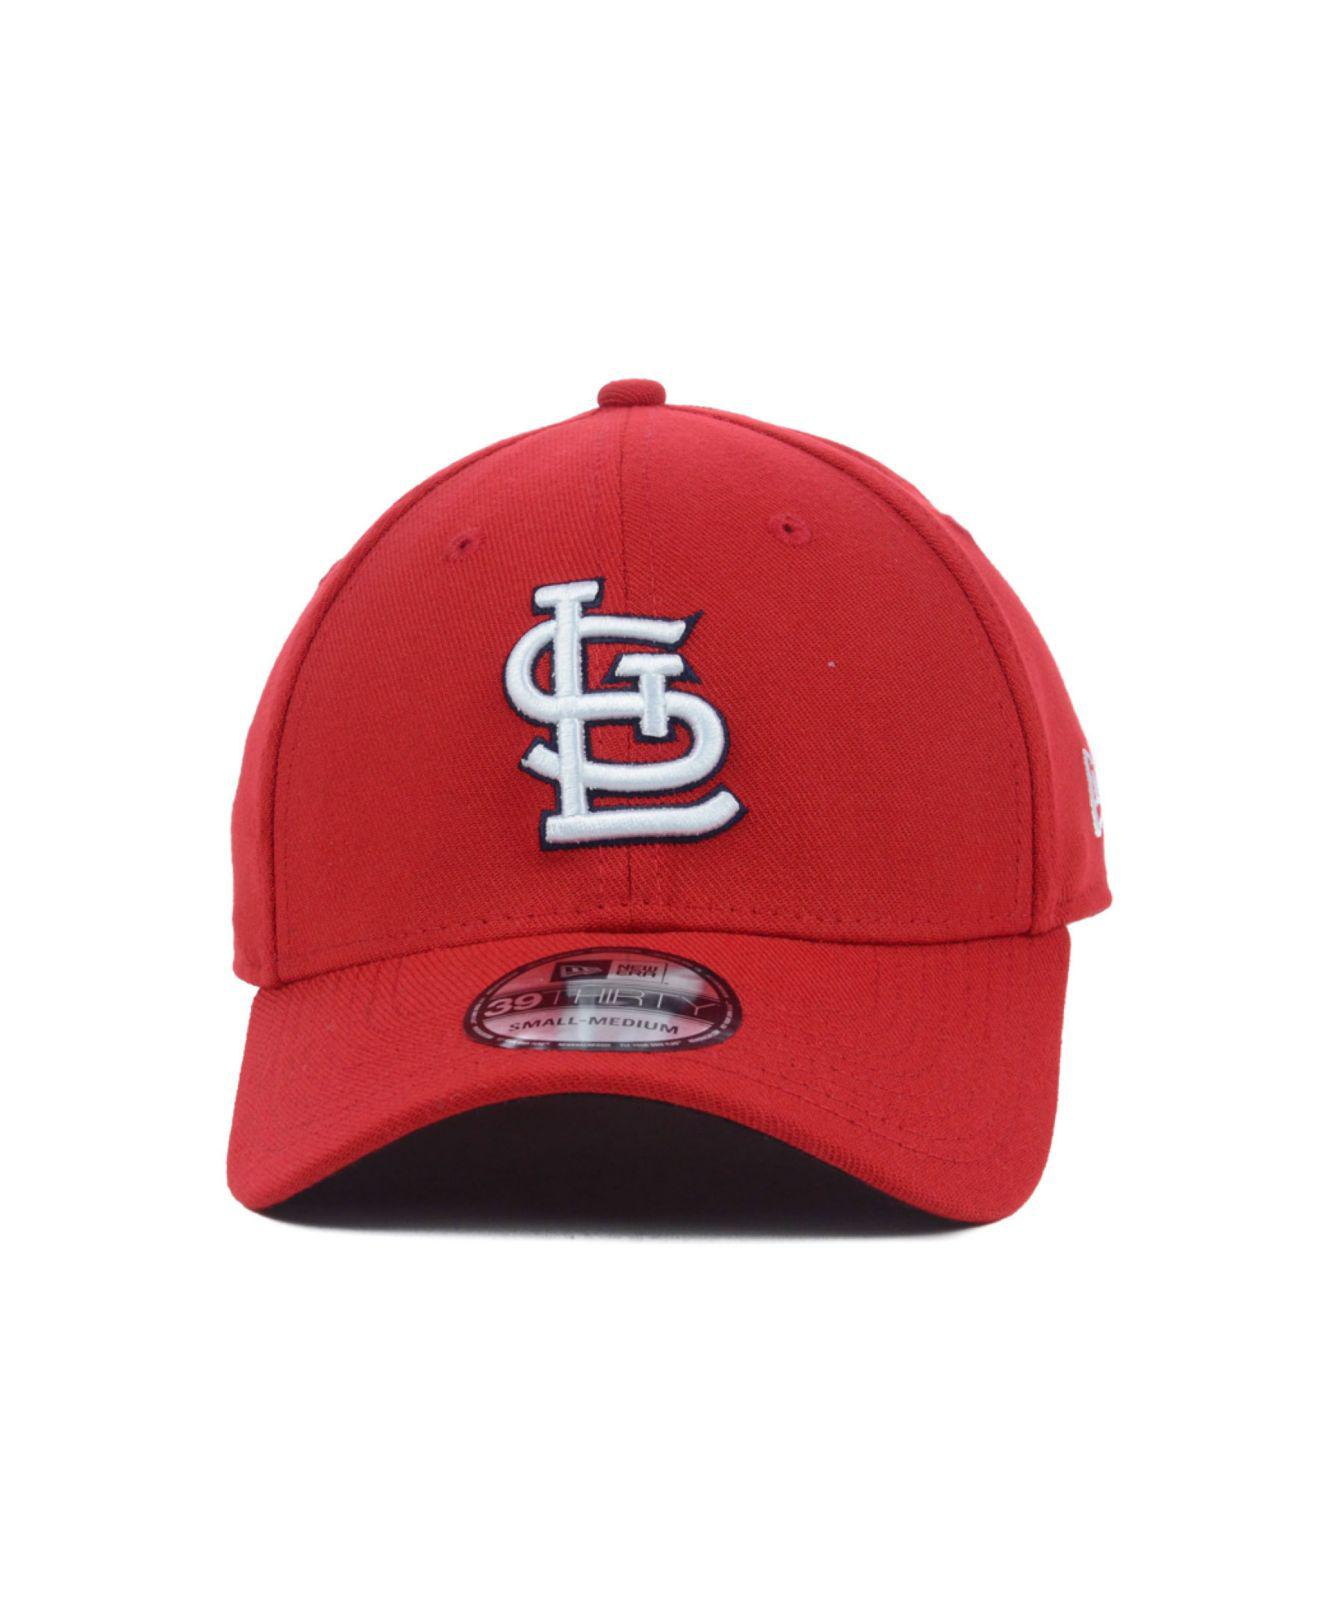 b26850f7053414 ... patty classic 39thirty cap kelly green 0f52b 733df; get lyst ktz st. louis  cardinals mlb team classic 39thirty cap in red for men